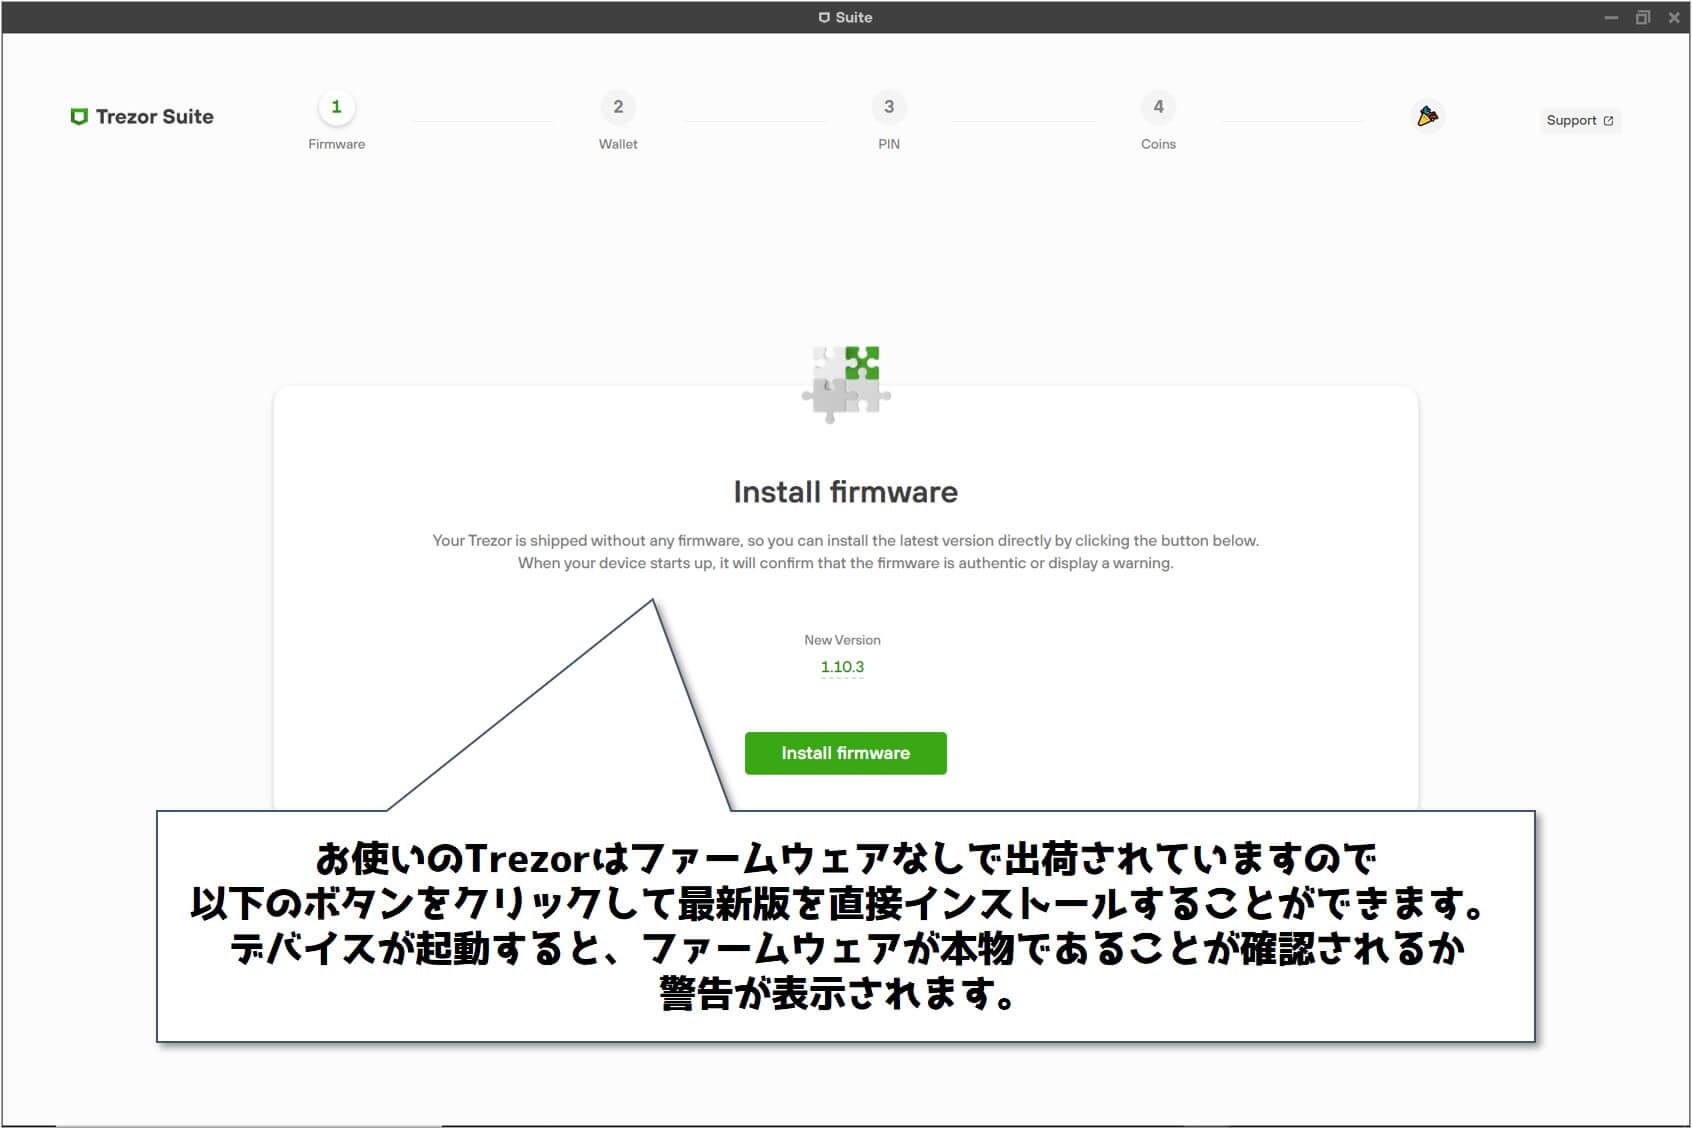 「Install firmware」を選択